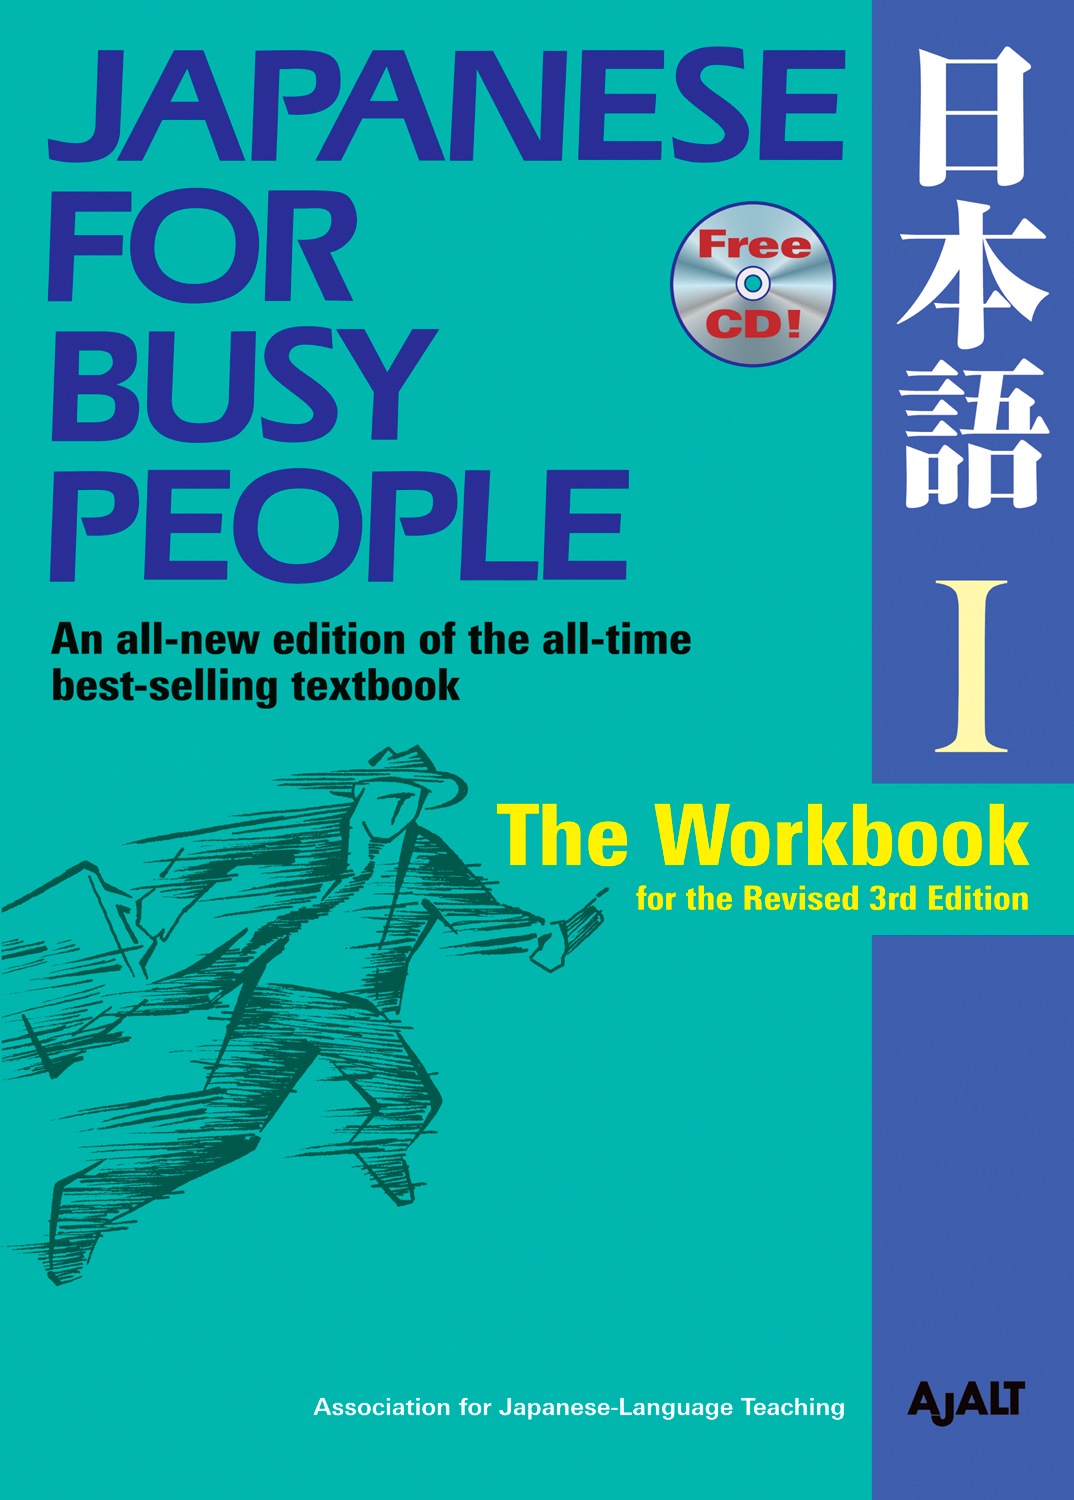 Cover of Japanese for Busy People Revised 3rd Edition I (The Workbook): An all-new edition of the all-time best-selling textbook.